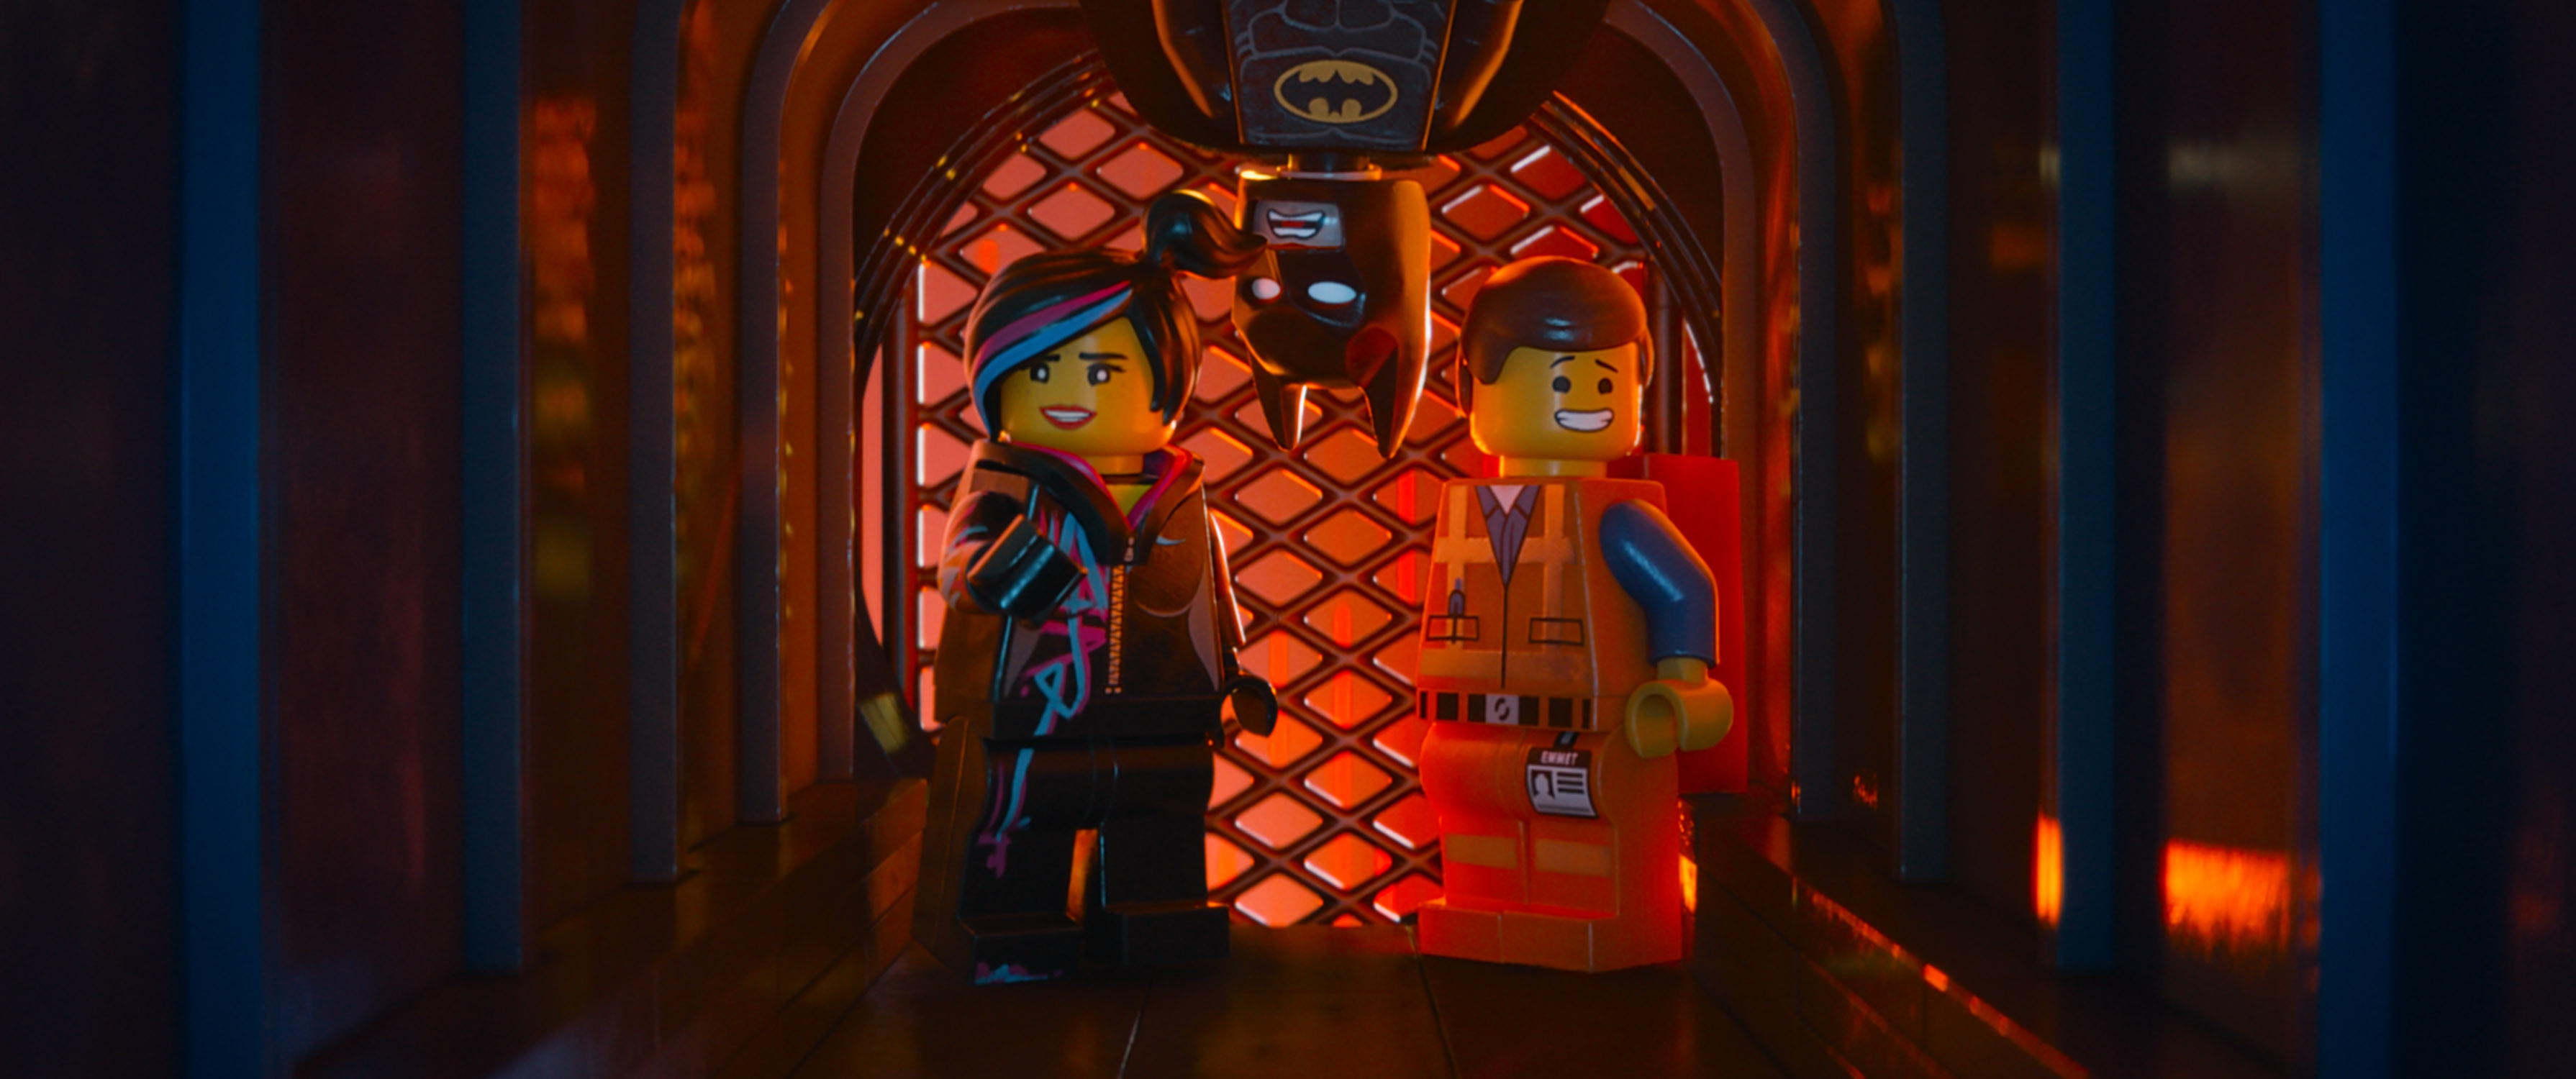 The Lego Movie: Mattoncini alla riscossa tra Orwell e buoni sentimenti